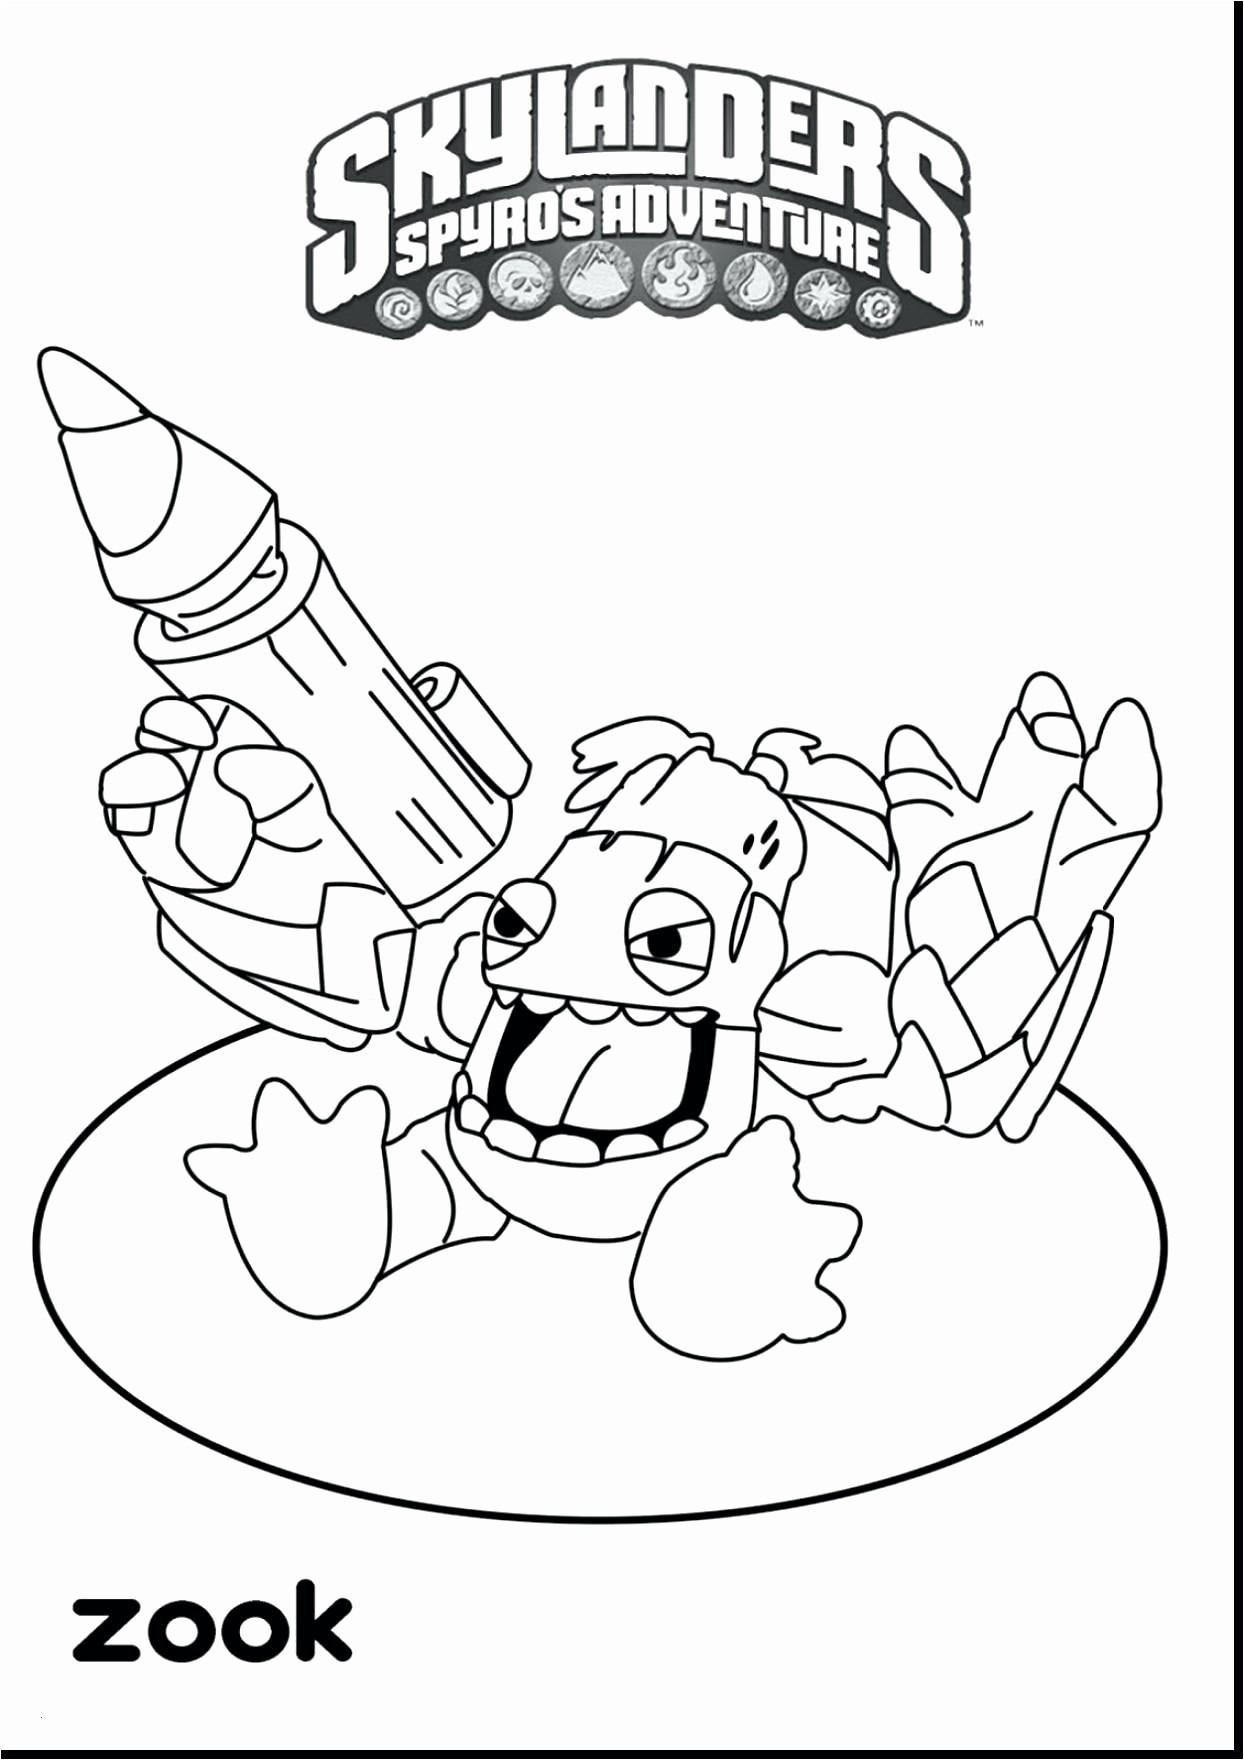 bible story coloring pages preschoolers Download-Mothers Day Coloring Pages Free 5-t